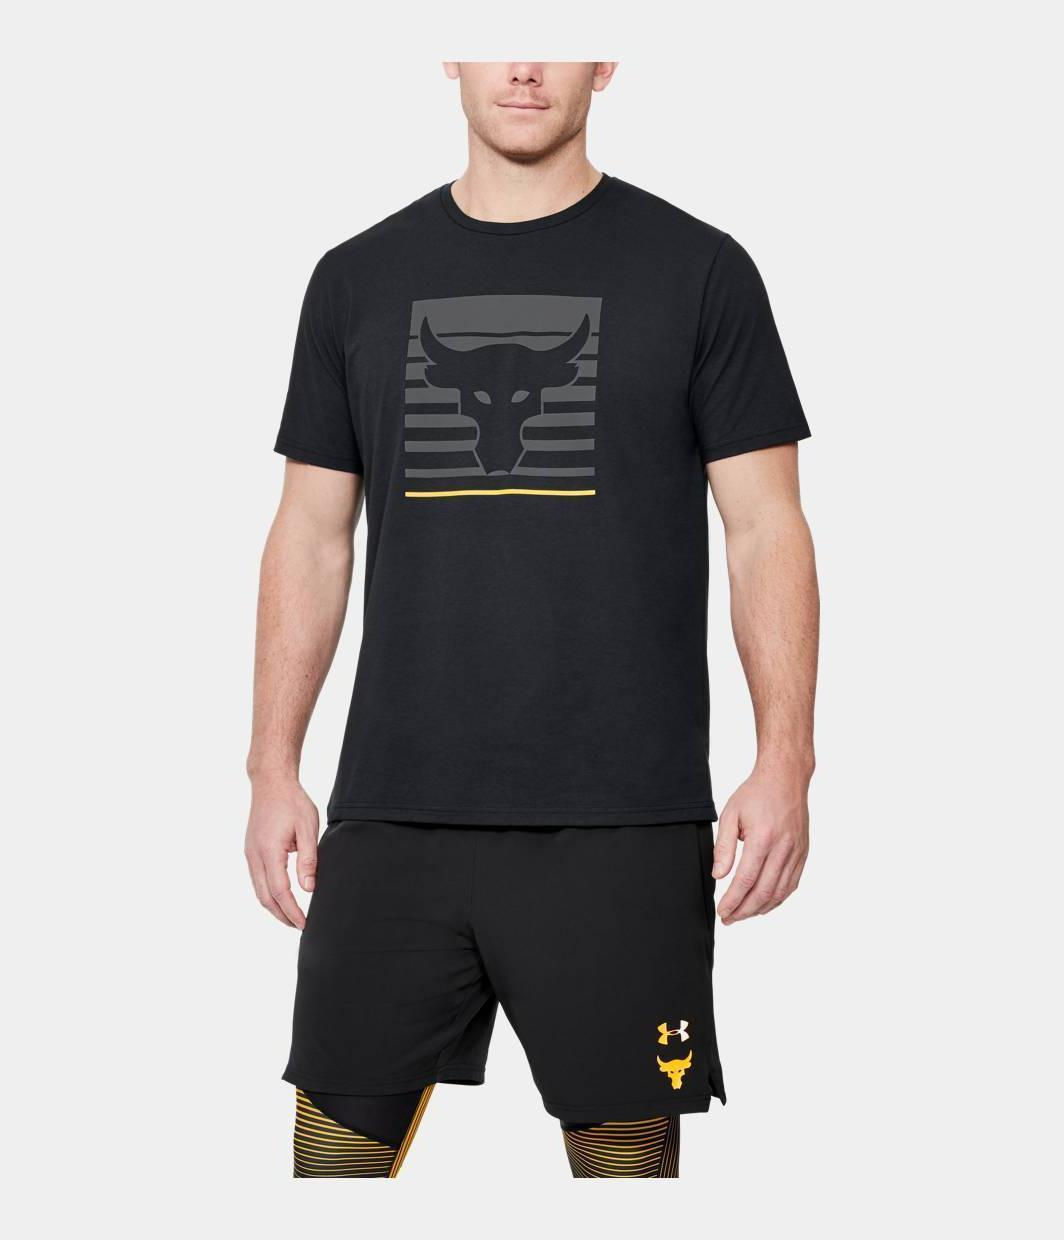 Under Armour UA Project Brahma Tee